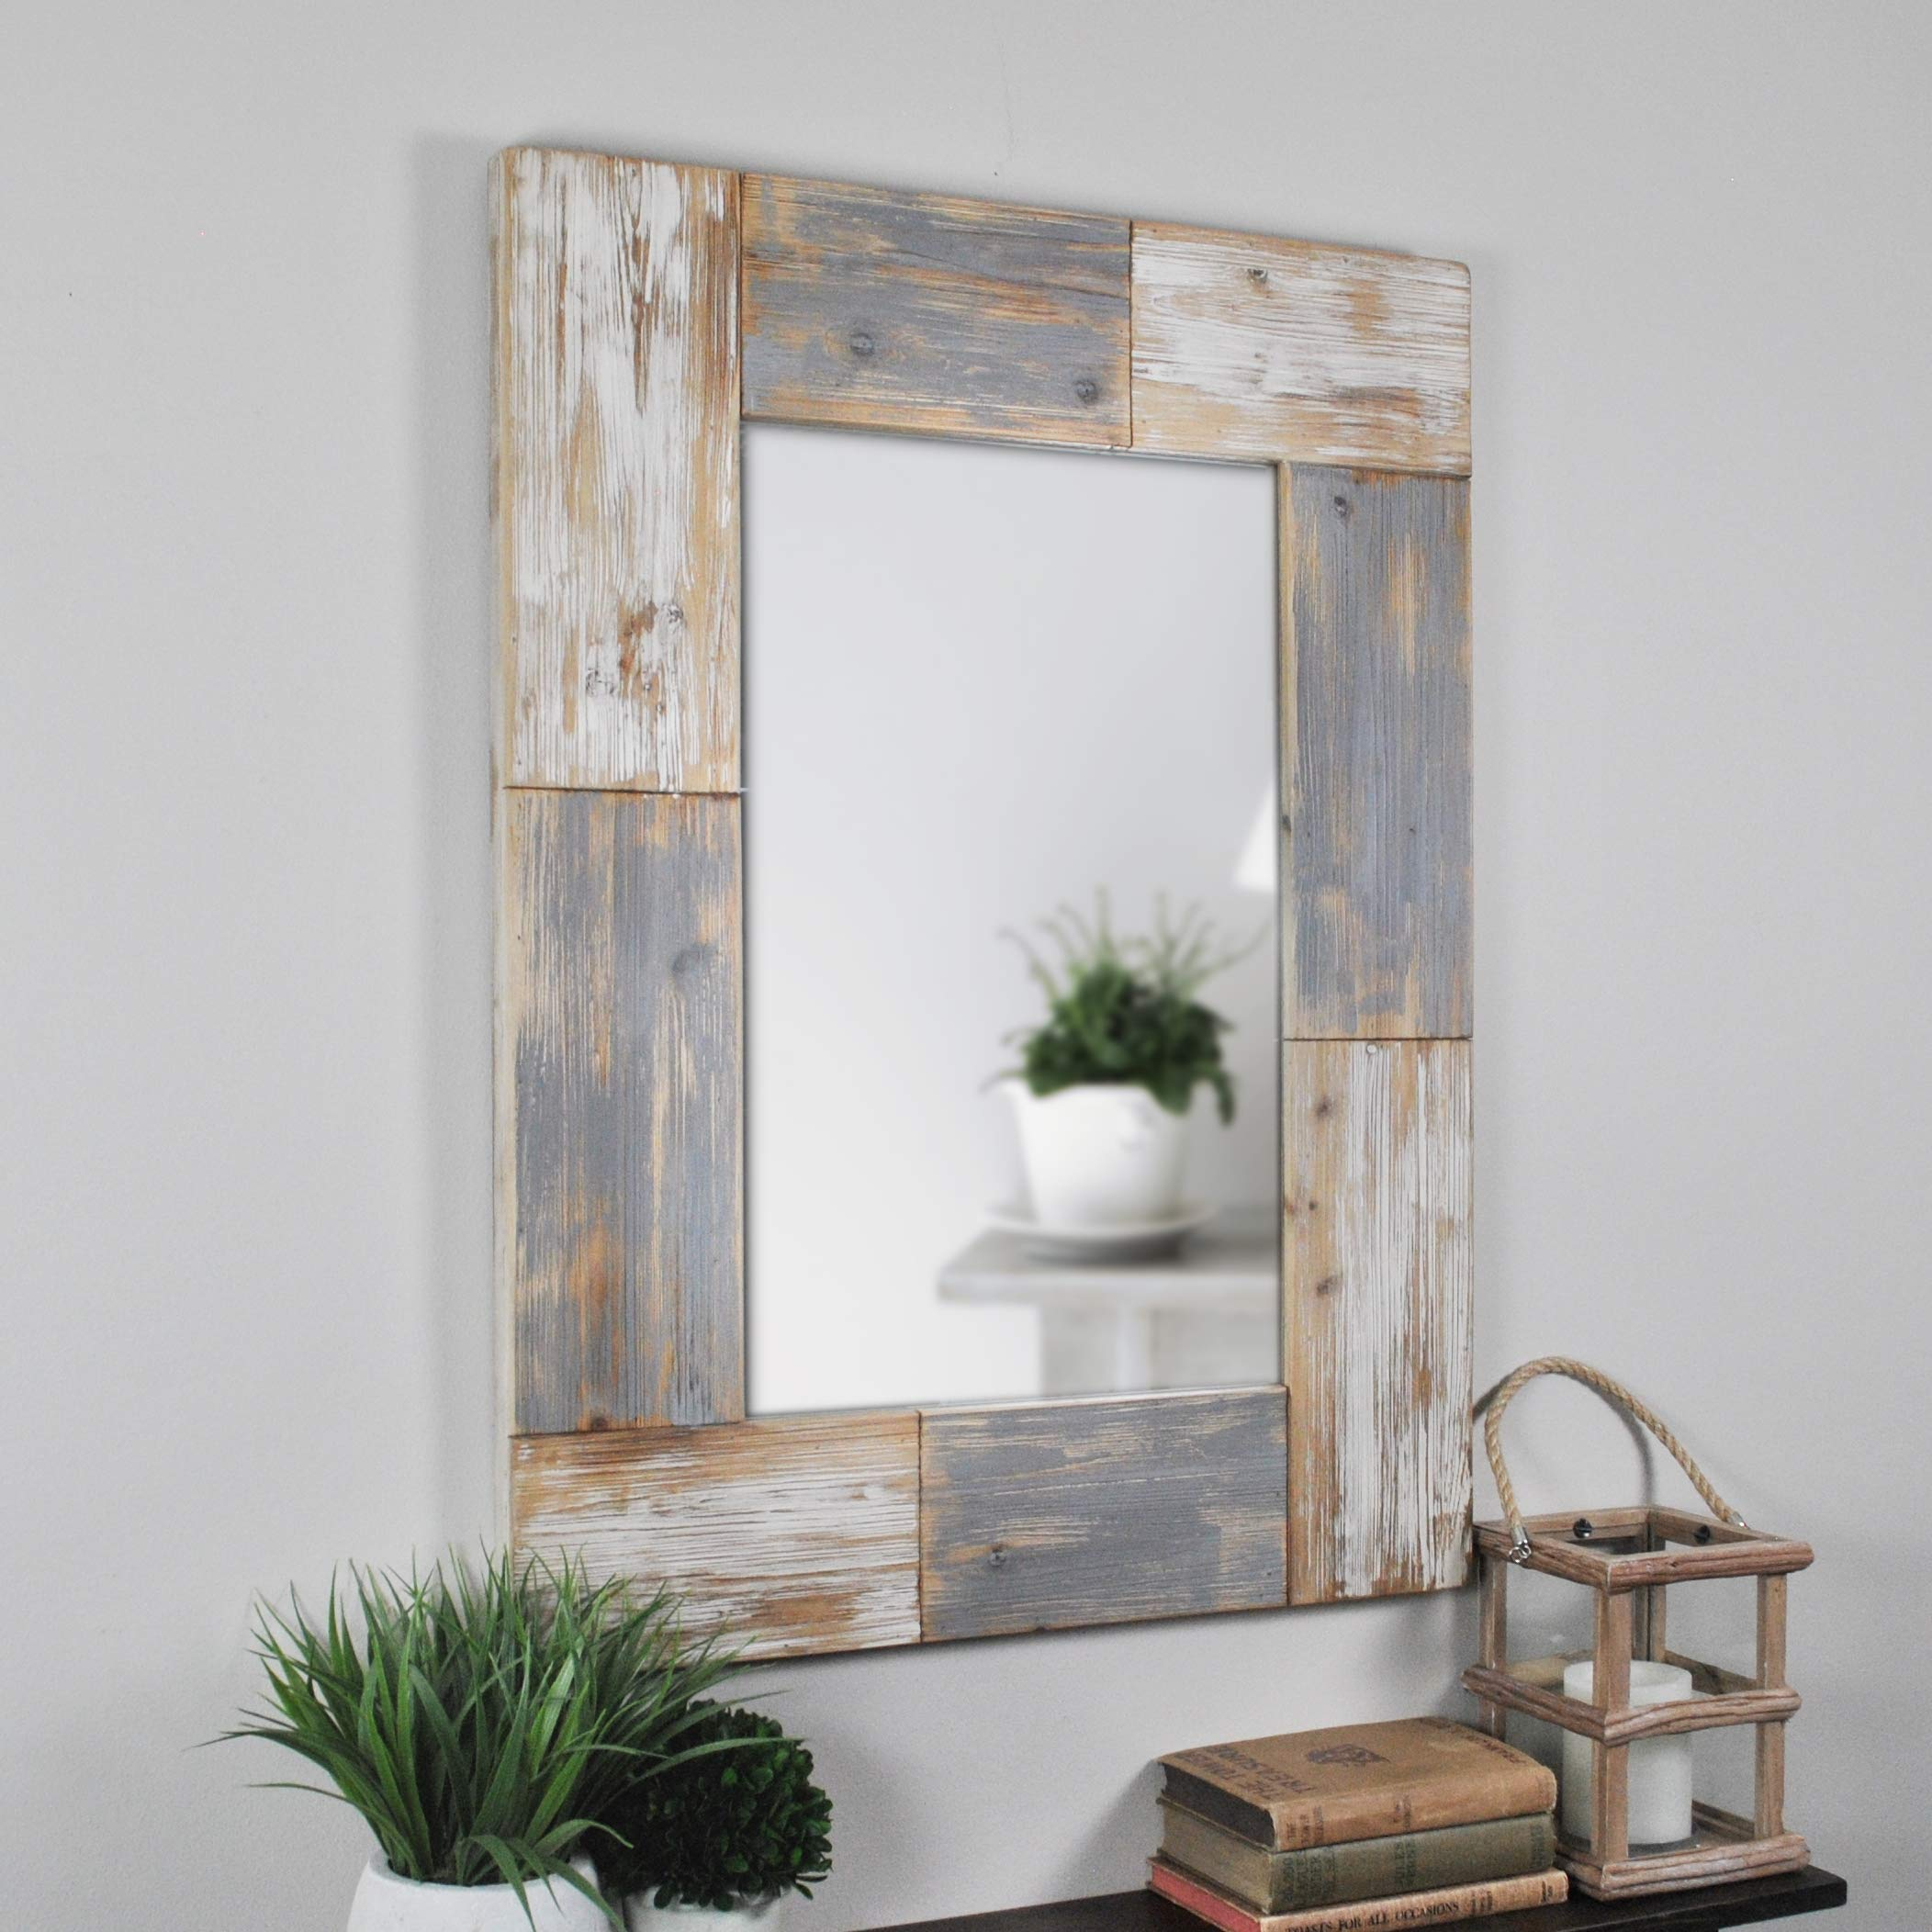 FirsTime & Co. Mason Planks Wall Mirror, 31.5''H x 24''W, Aged White & Gray Wood by FirsTime & Co.